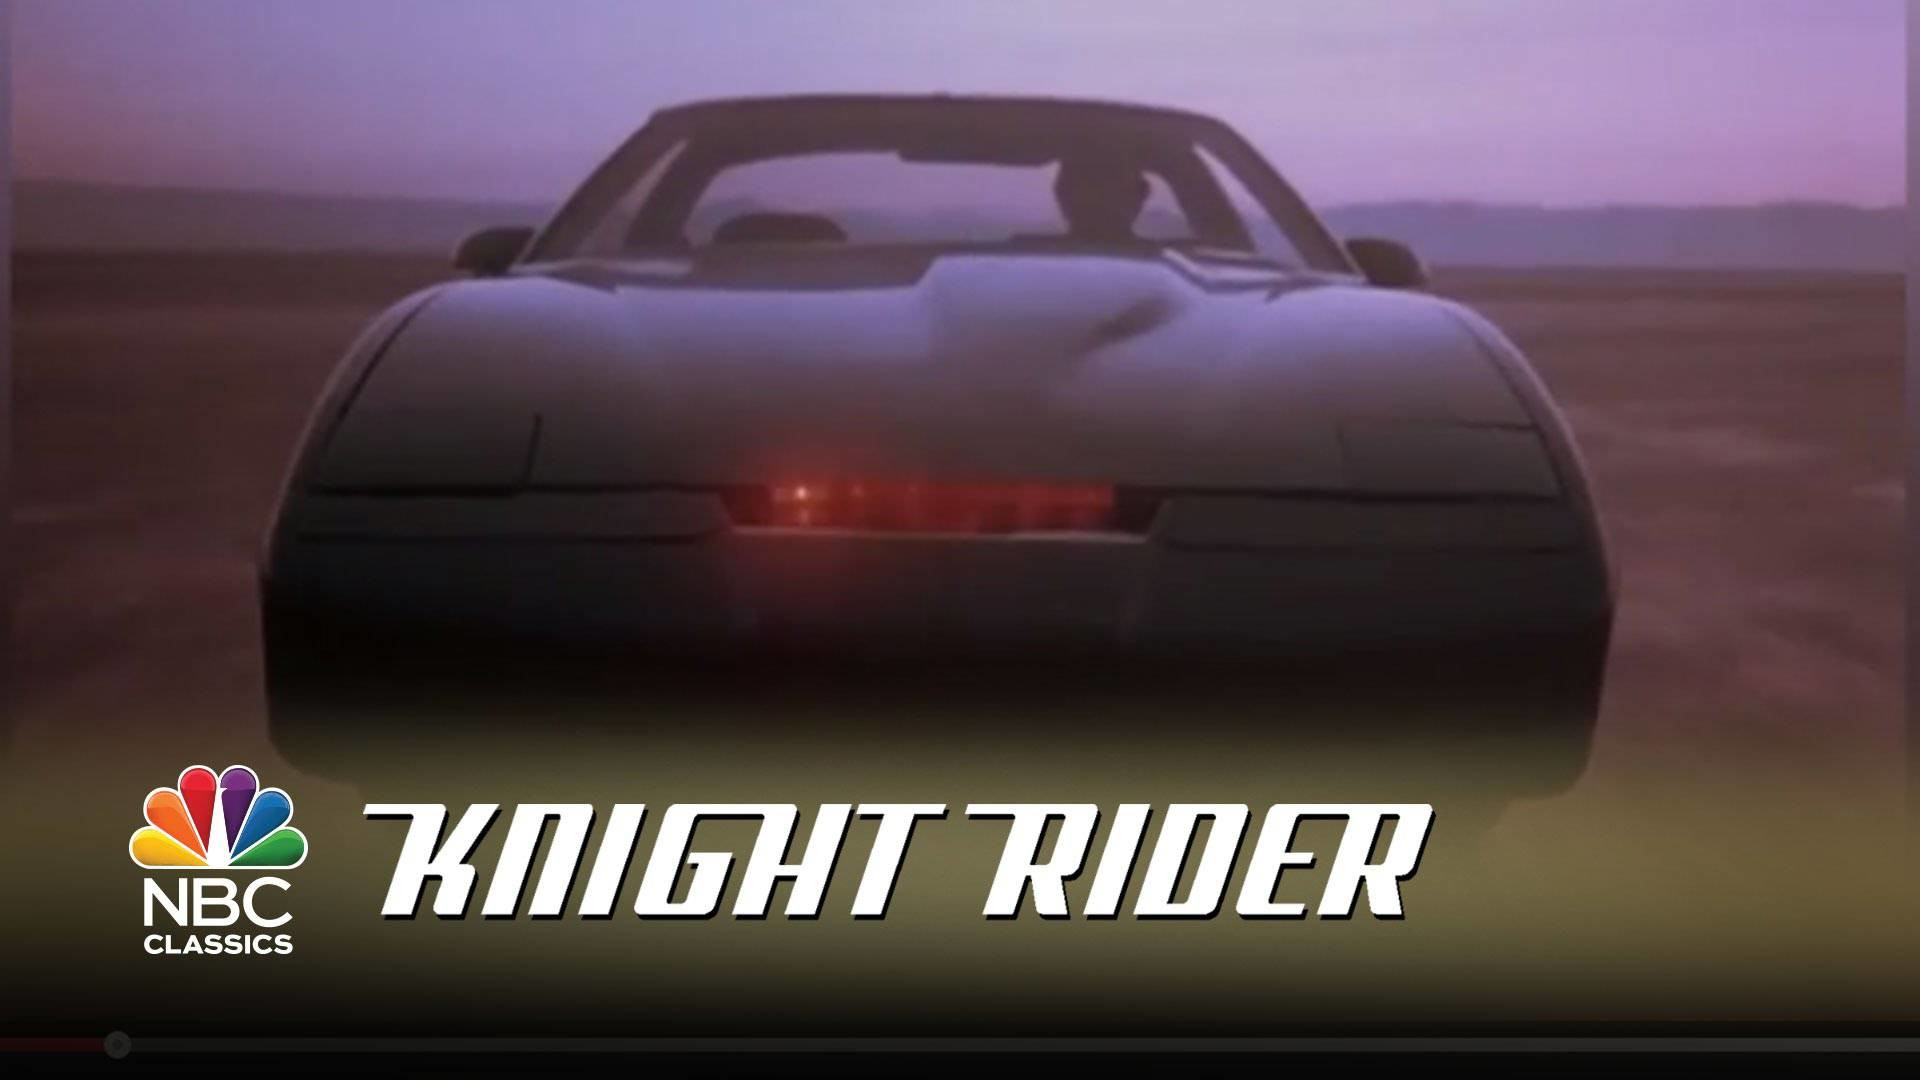 1920x1080 Knight Rider Android Live Wallpaper YouTube HD Wallpapers 1920×1080